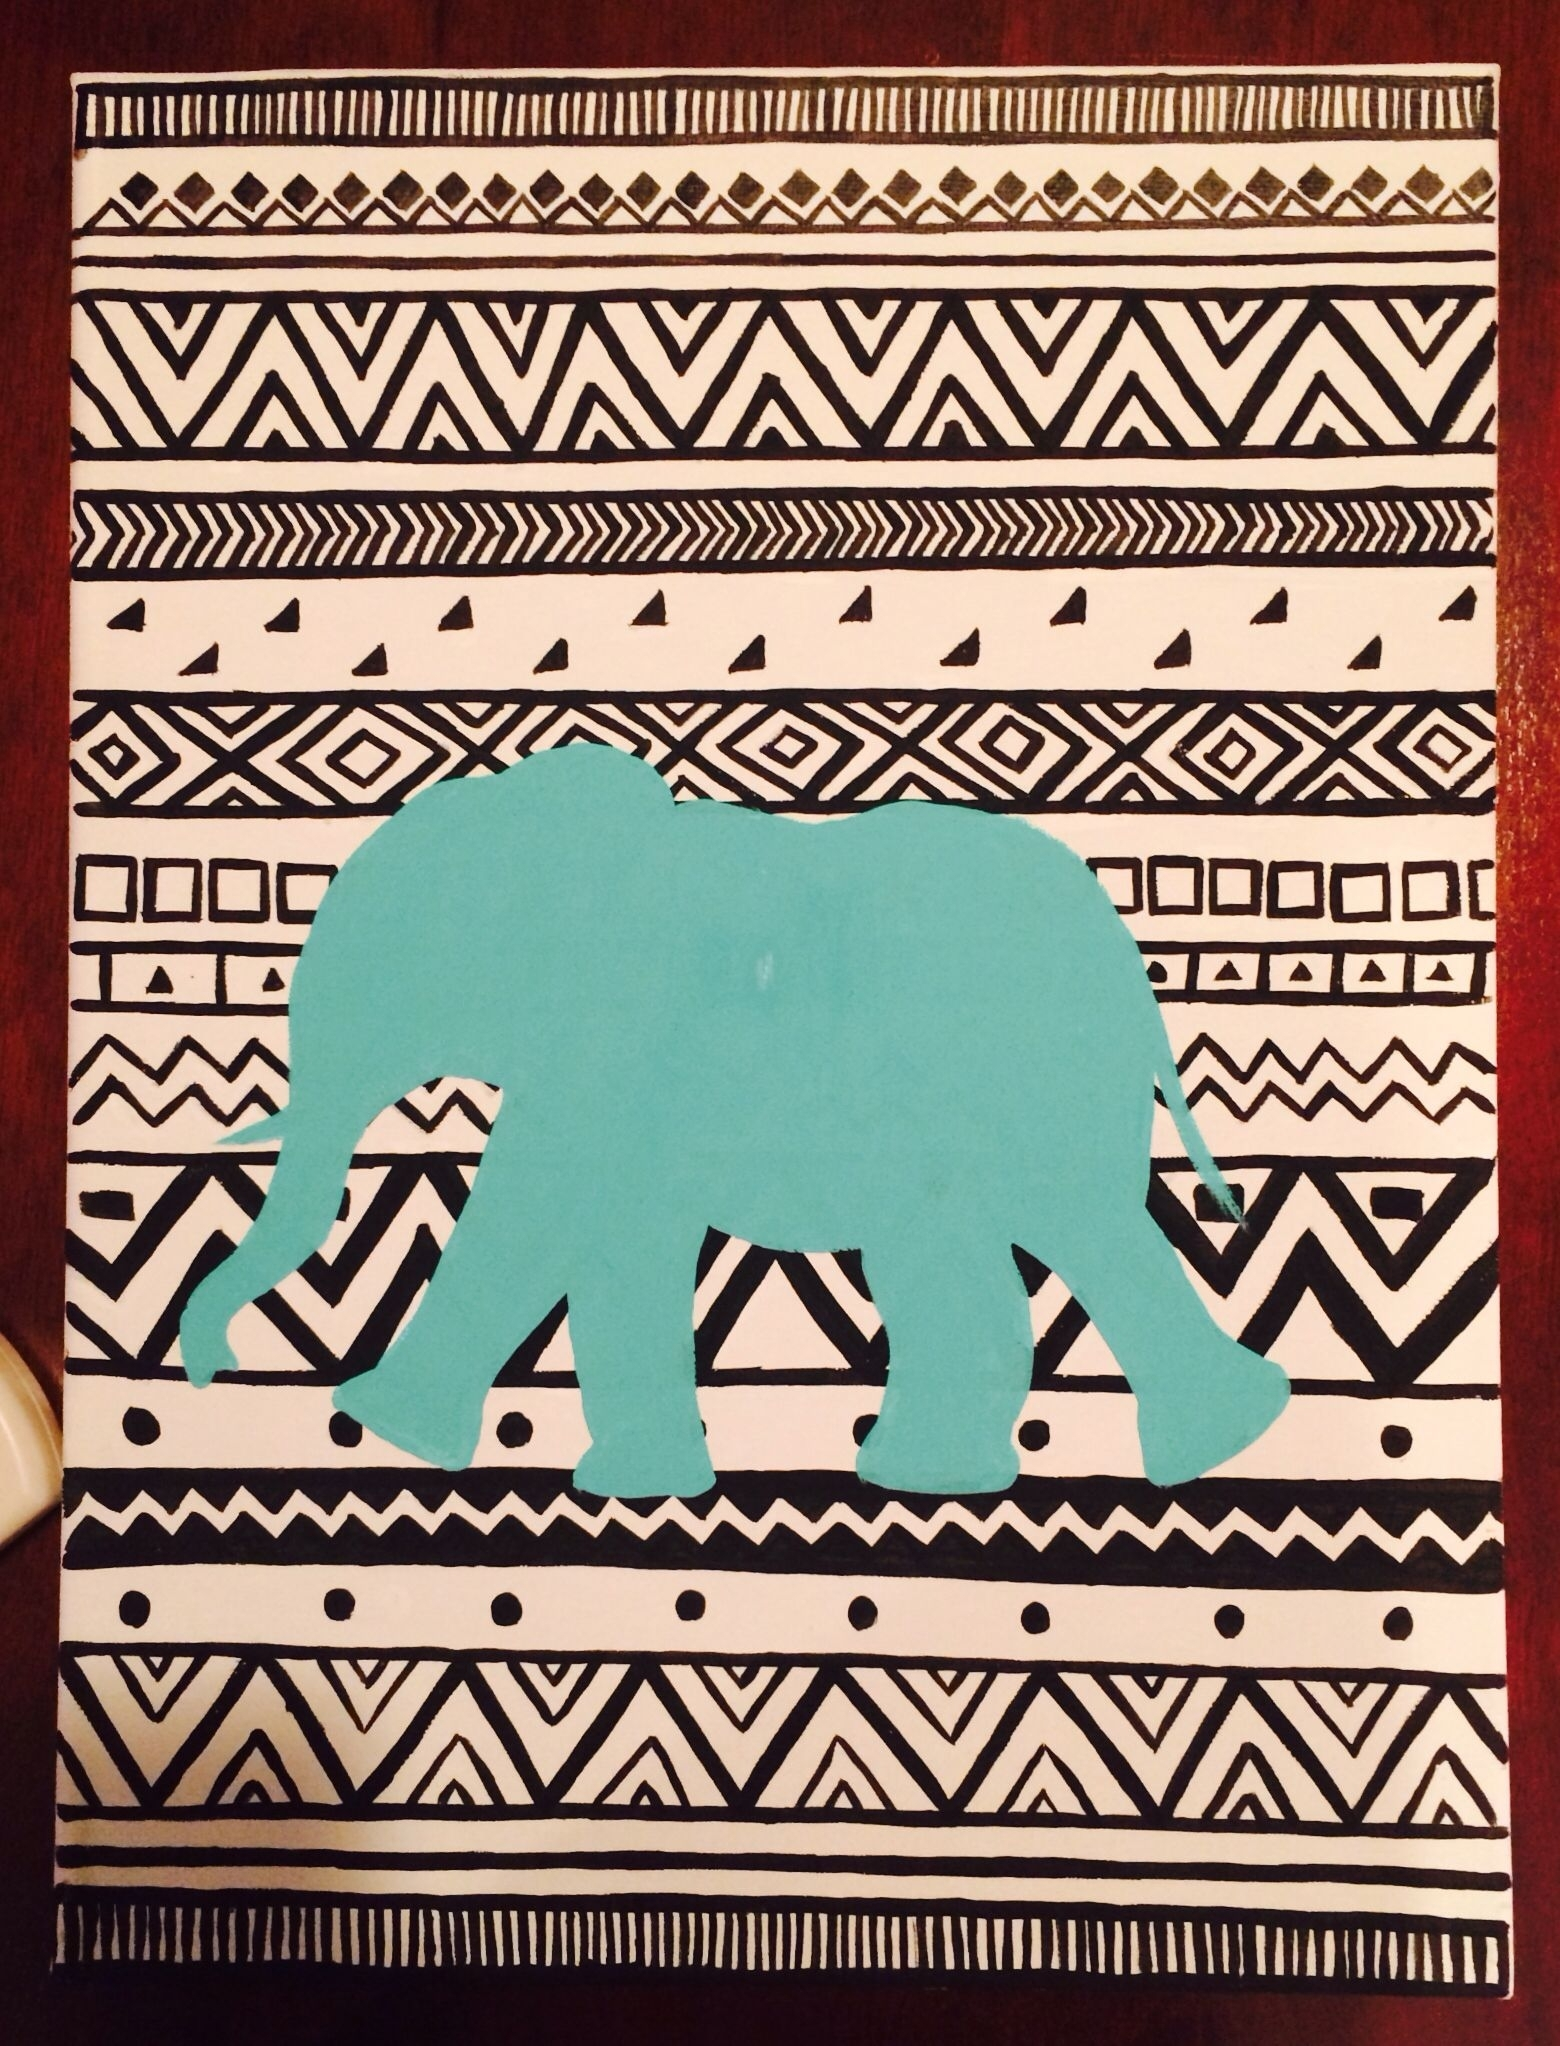 Diy College Dorm Decor, Tribal Elephant Canvas Art | Room Regarding Most Recent Aztec Fabric Wall Art (View 5 of 15)